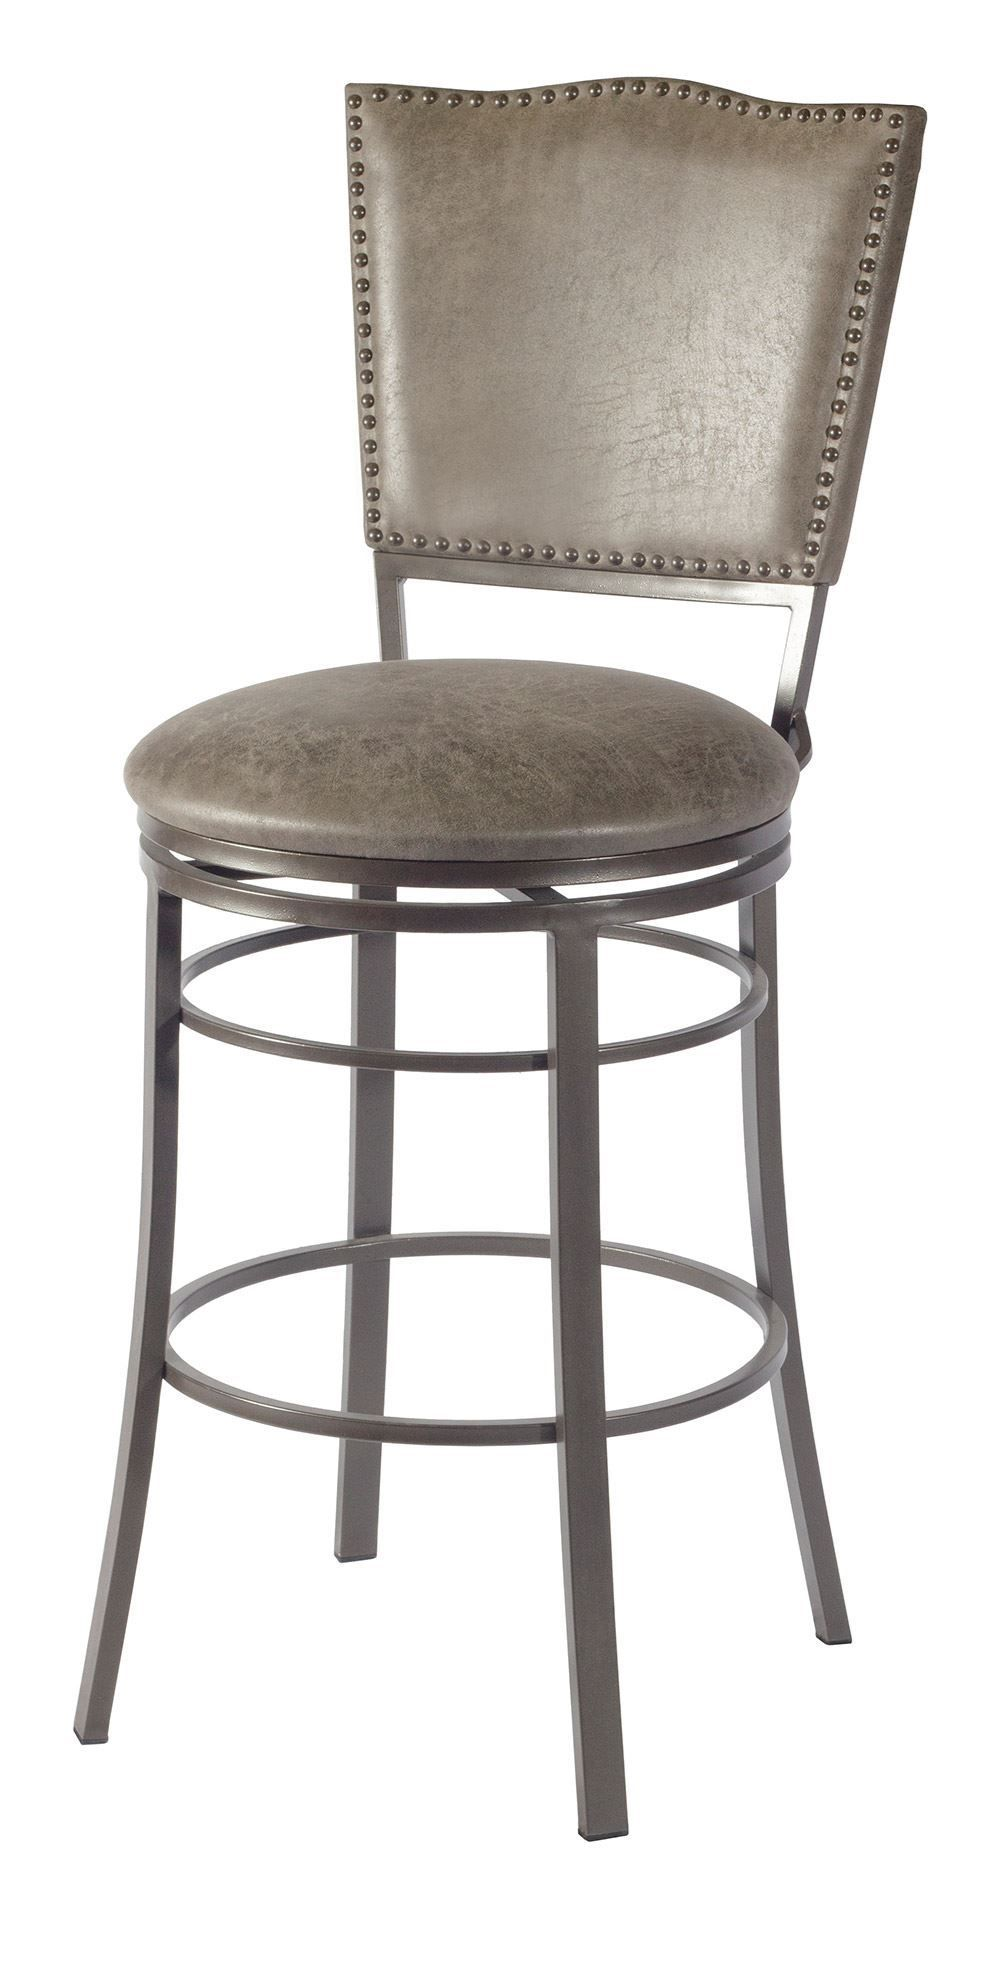 Picture of Samantha Granite 30 Inch Swivel Stool